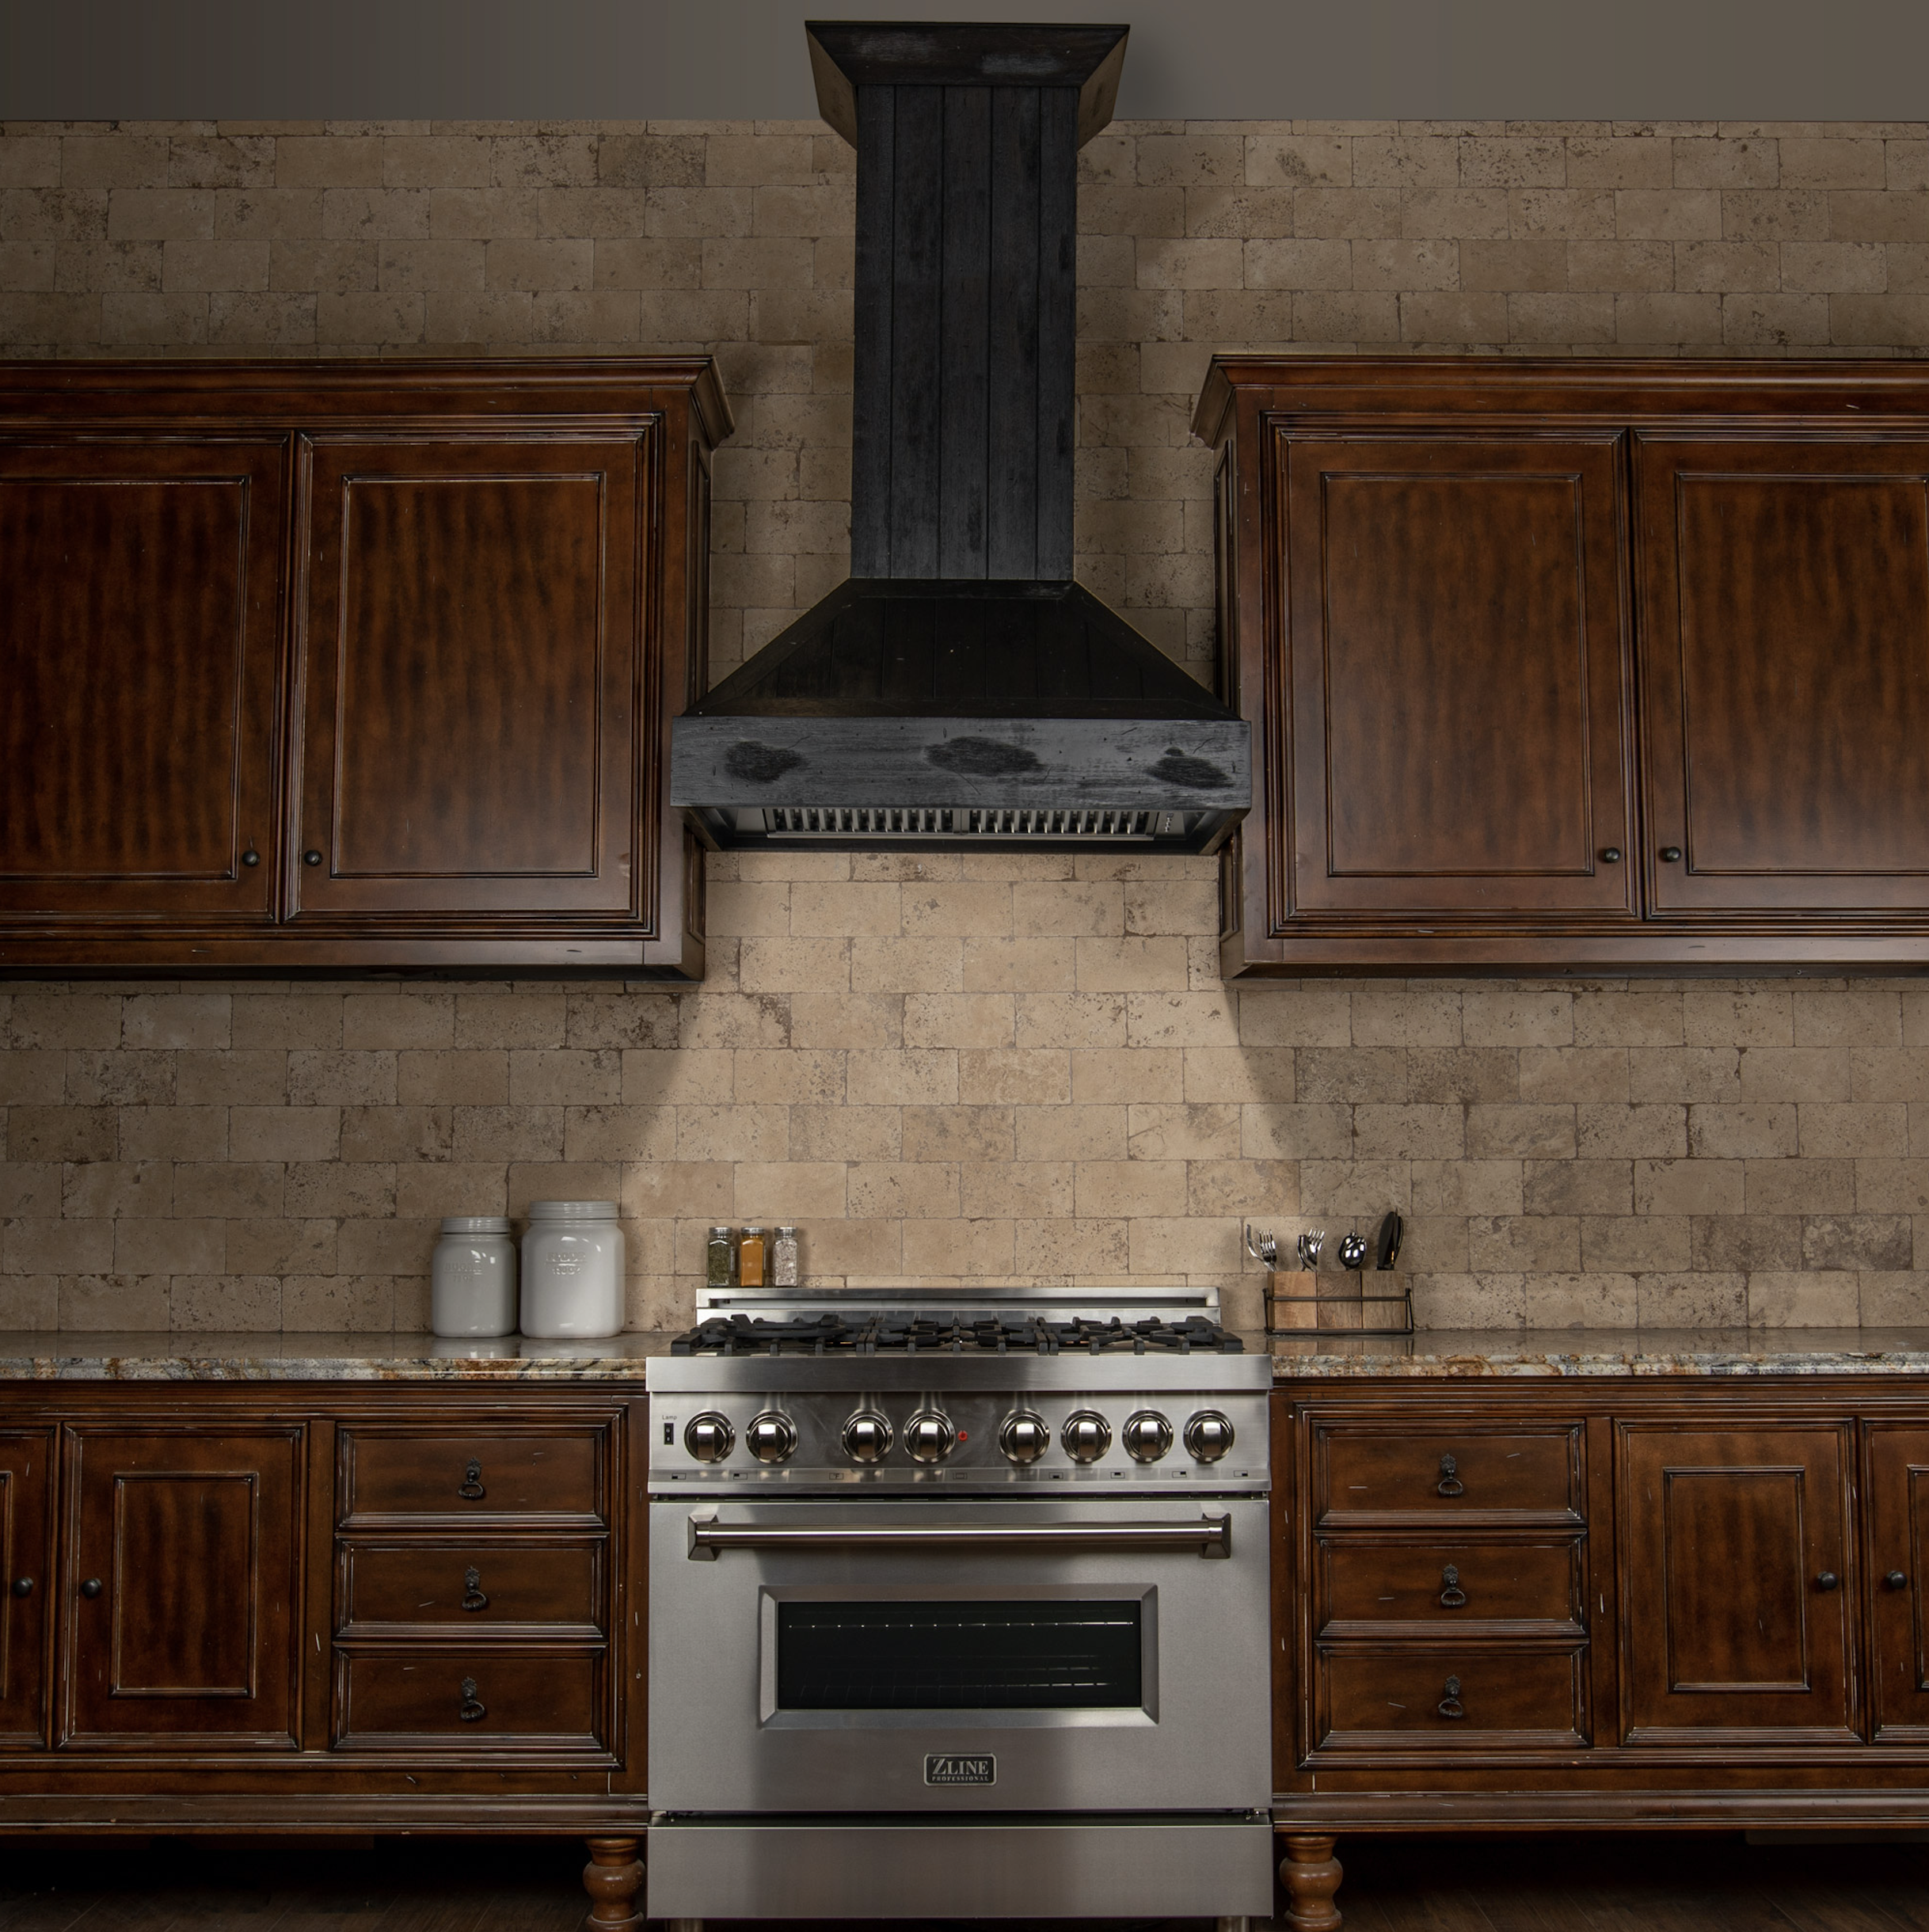 Add A Cabin Touch To Your Kitchen With This Rustic Dark Finish Wooden Hood Wall Mount Range Hood Wooden Range Hood Range Hood